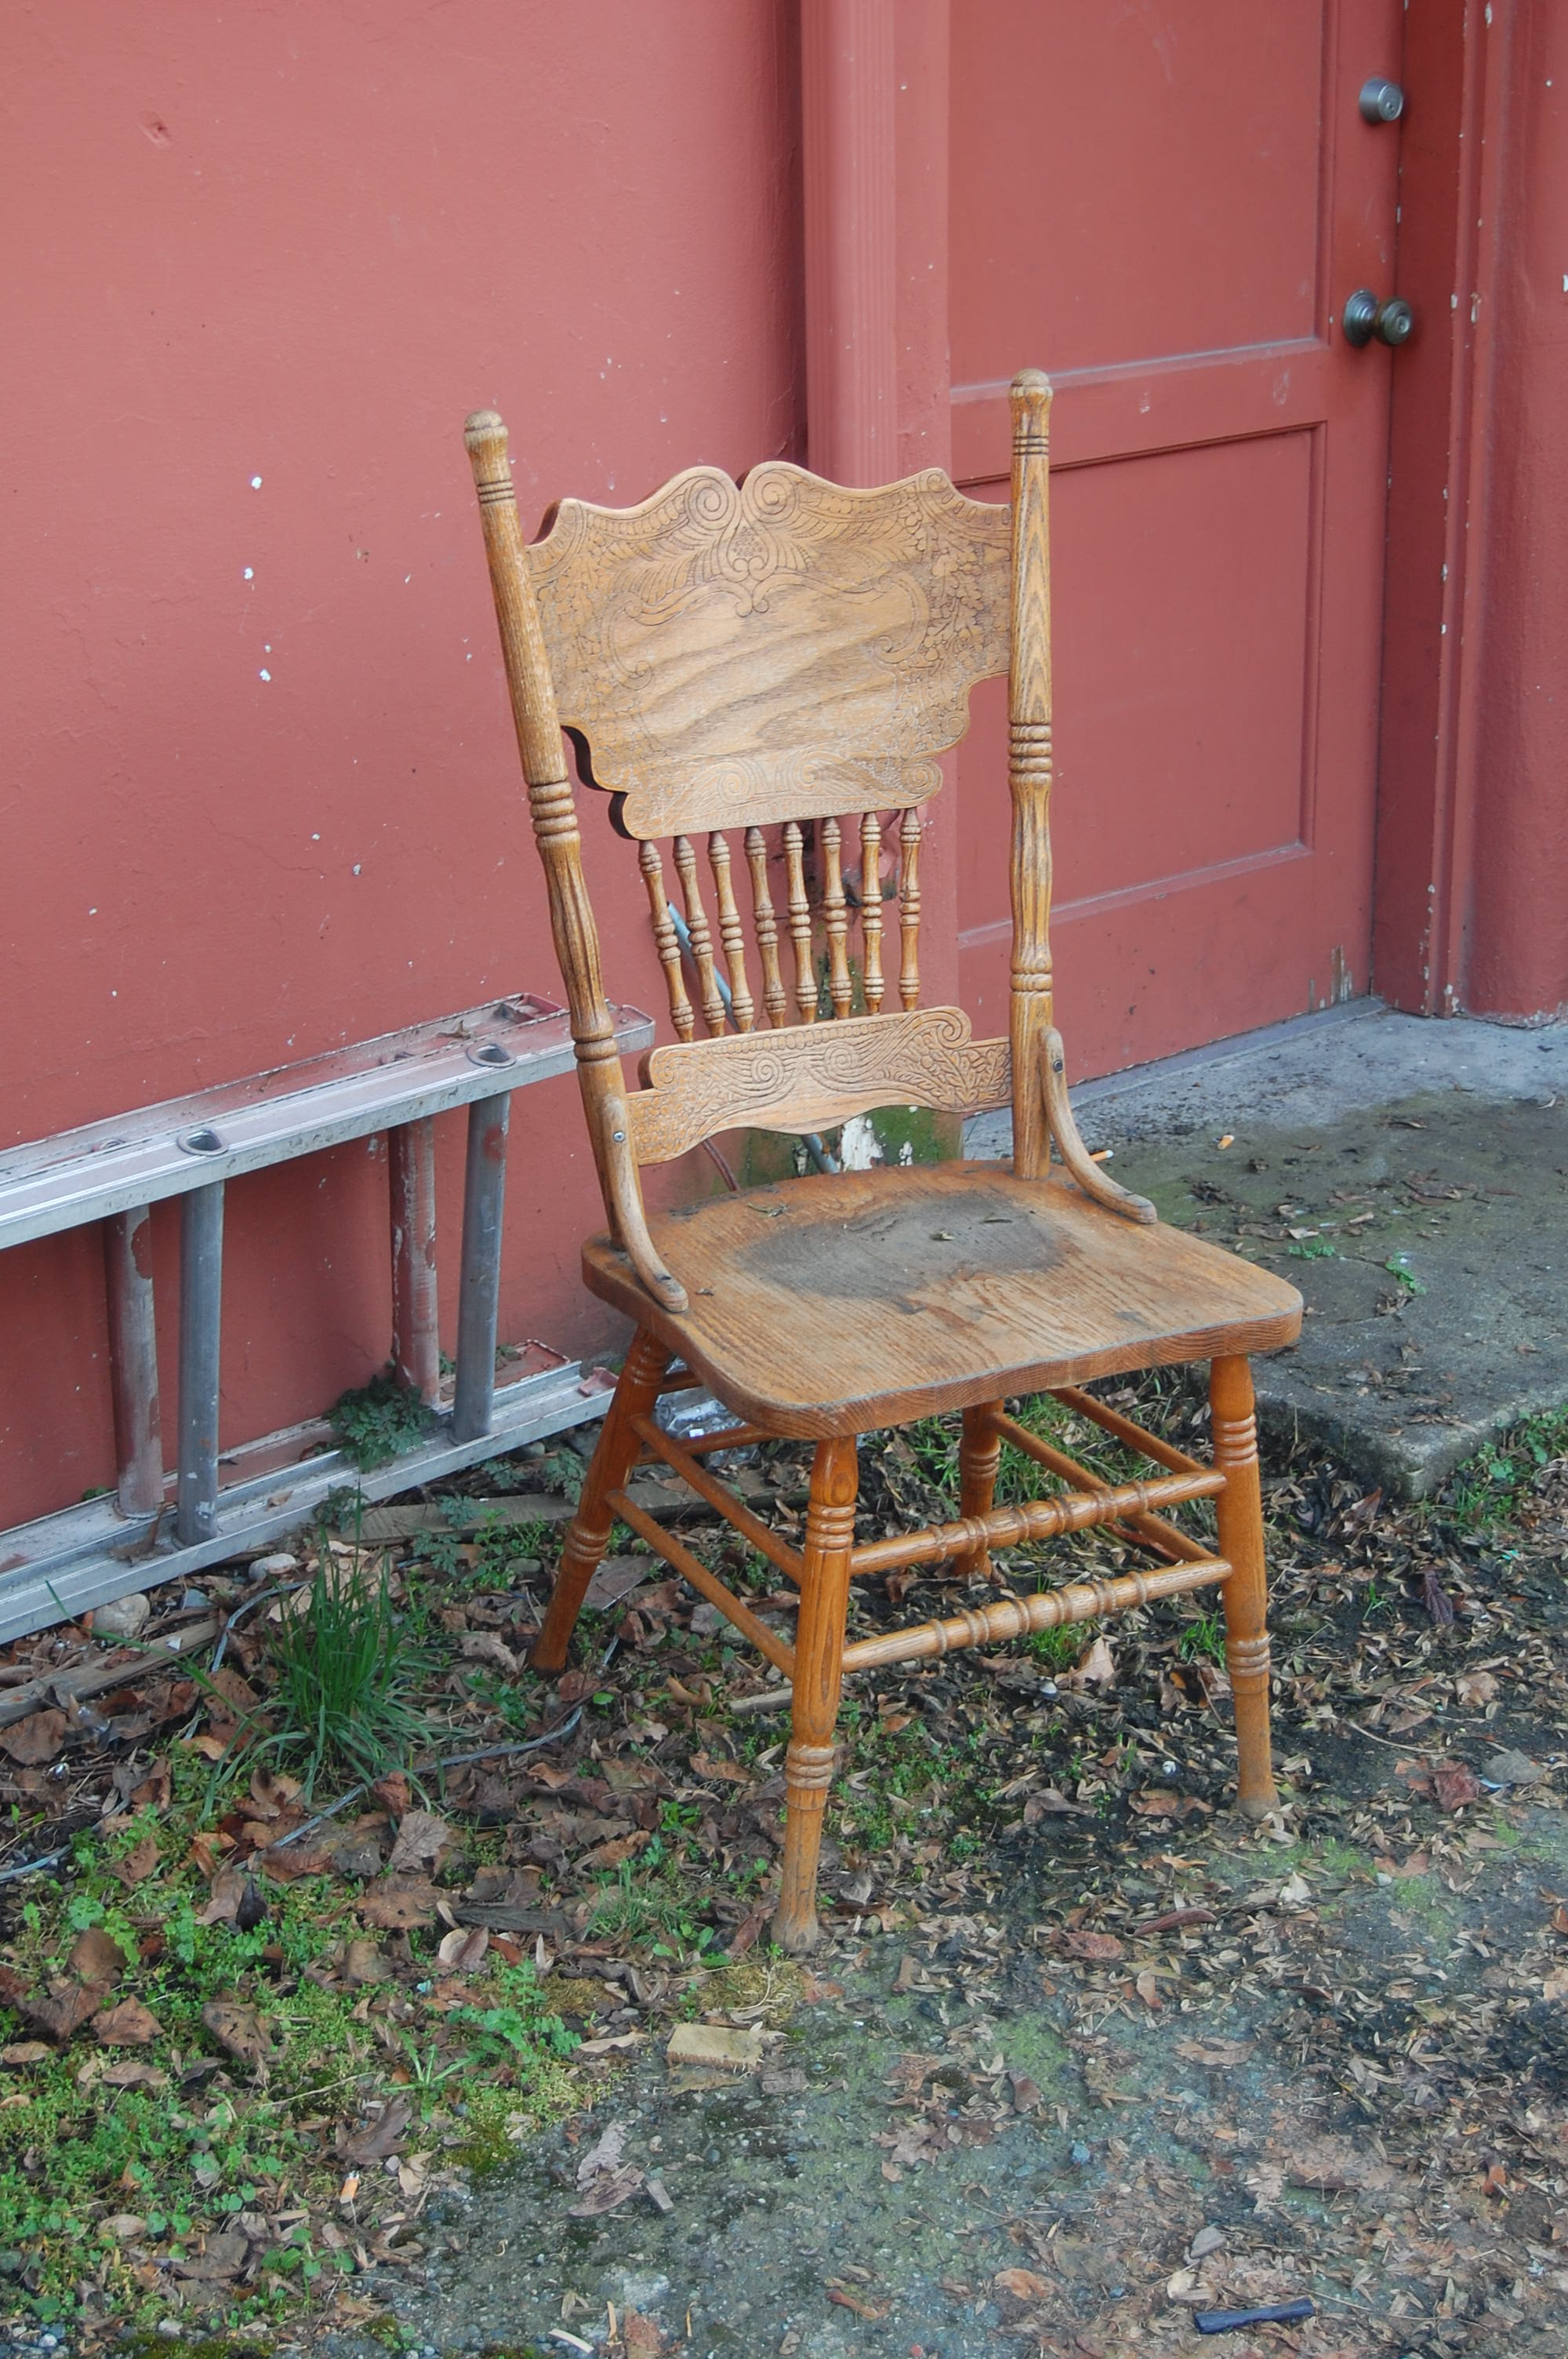 An old wooden chair outside a red door